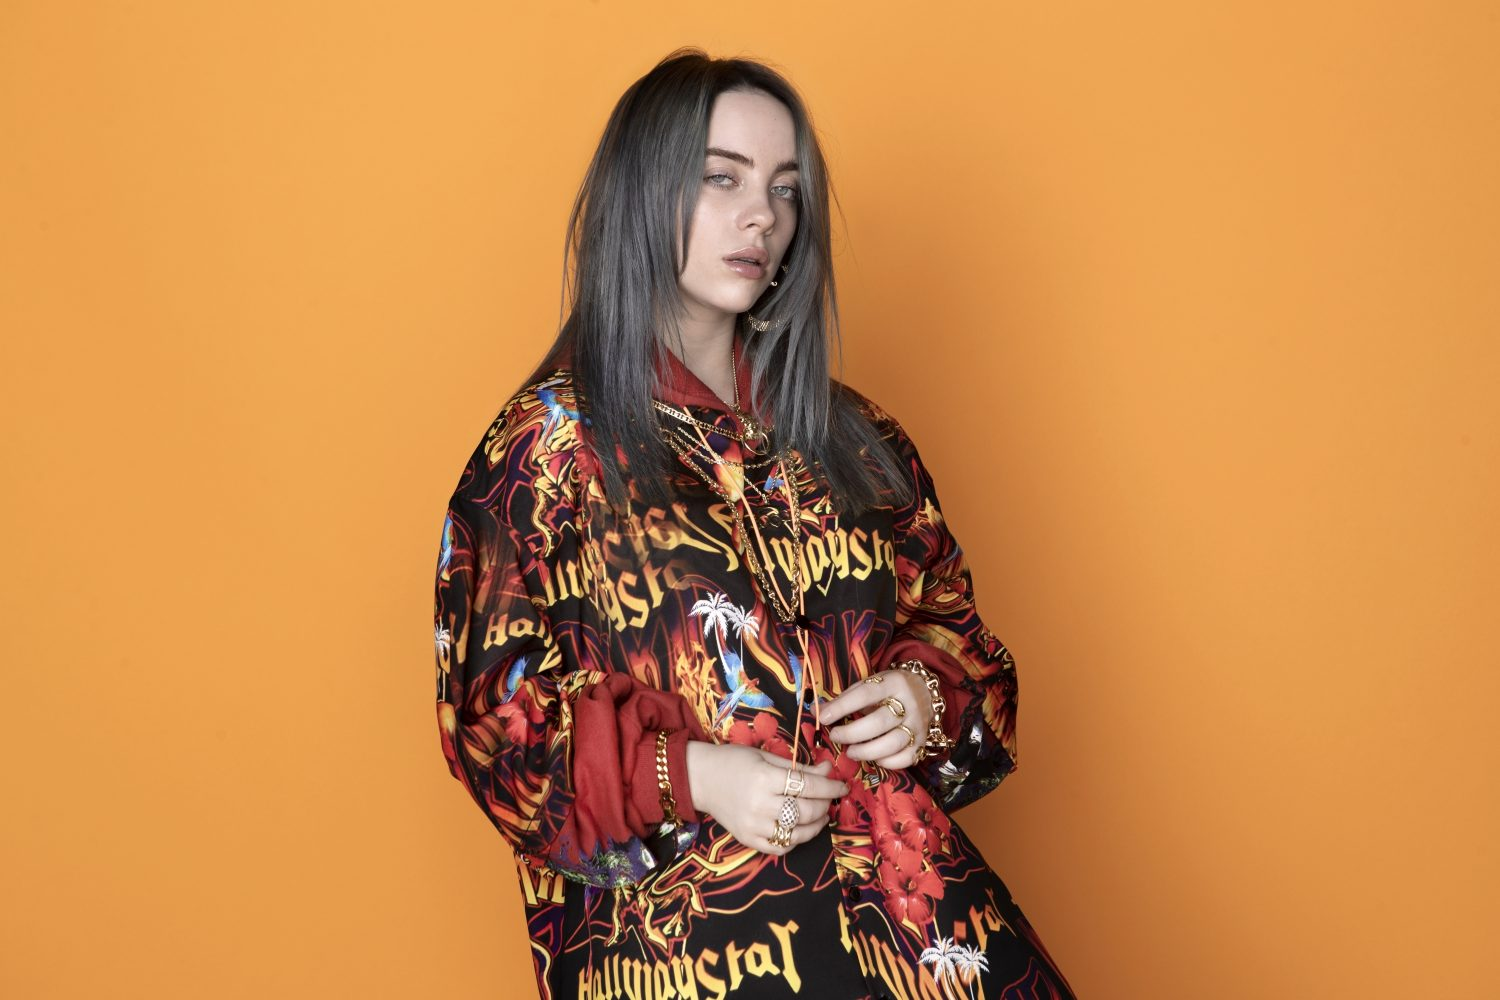 Billie Eilish confirms she's dropping a new single this week